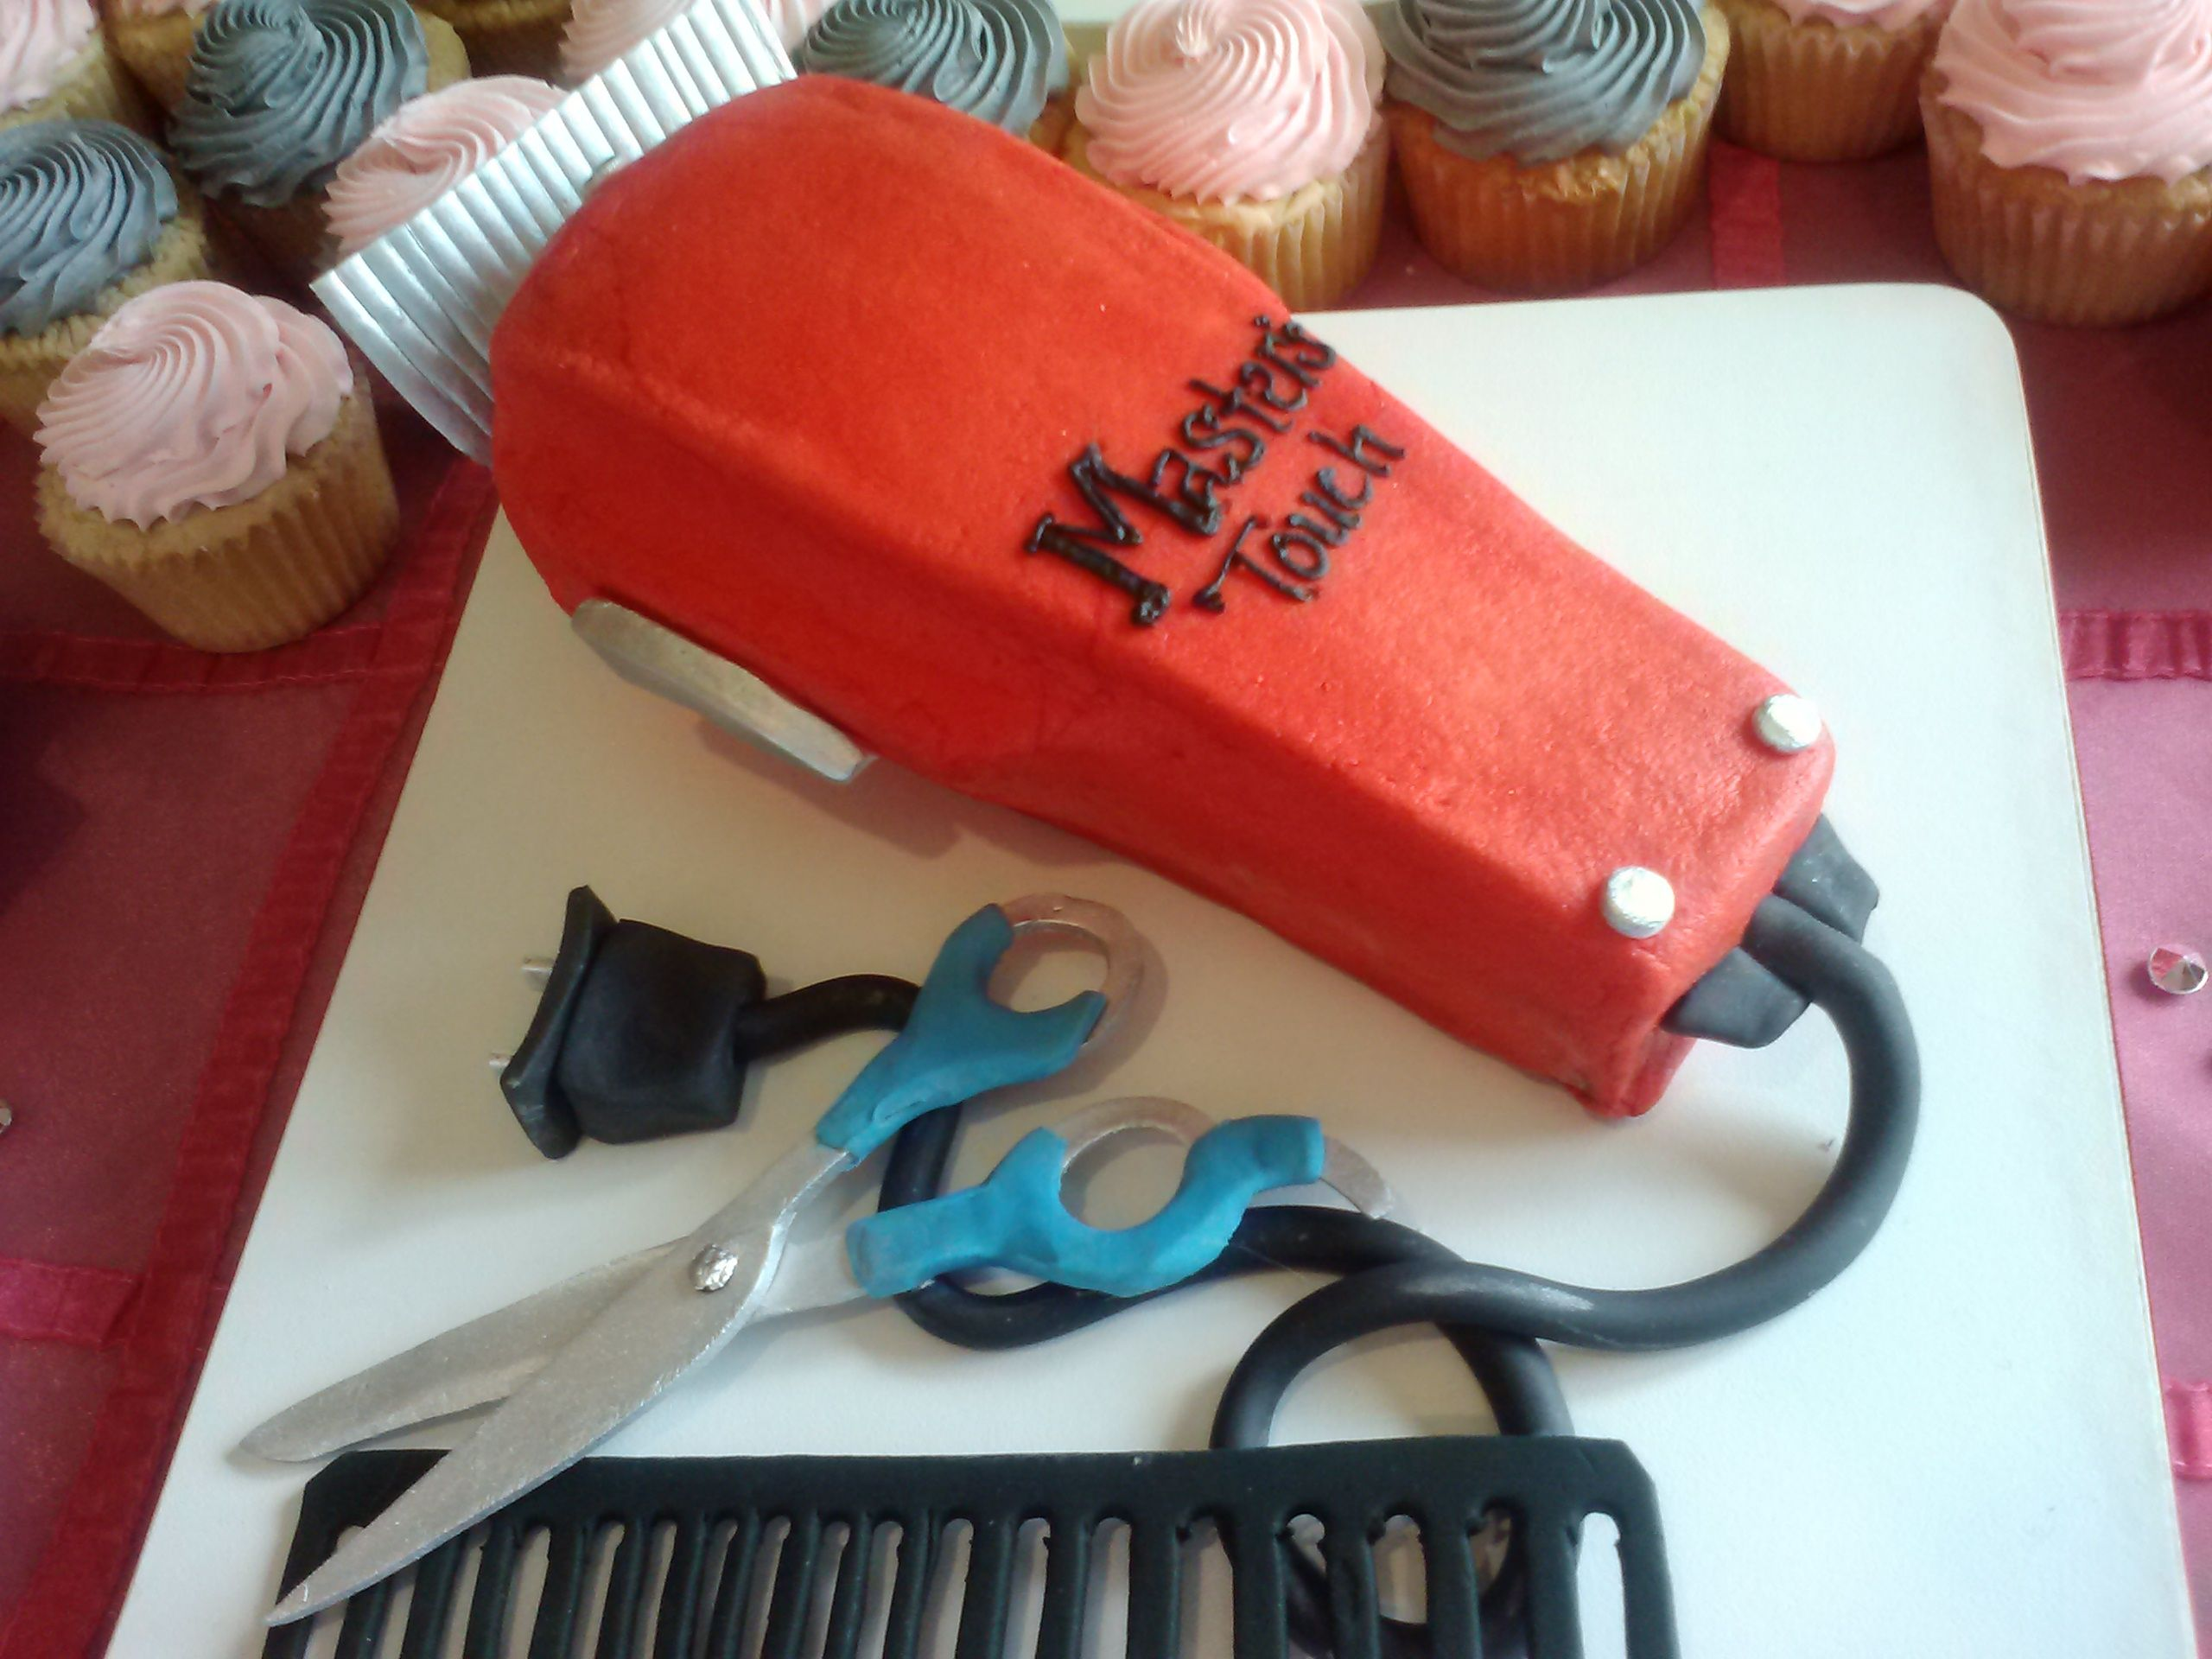 Best Grooms Cakes Images On Pinterest Grooms Icing And - Crazy cake designs lego grooms cake design